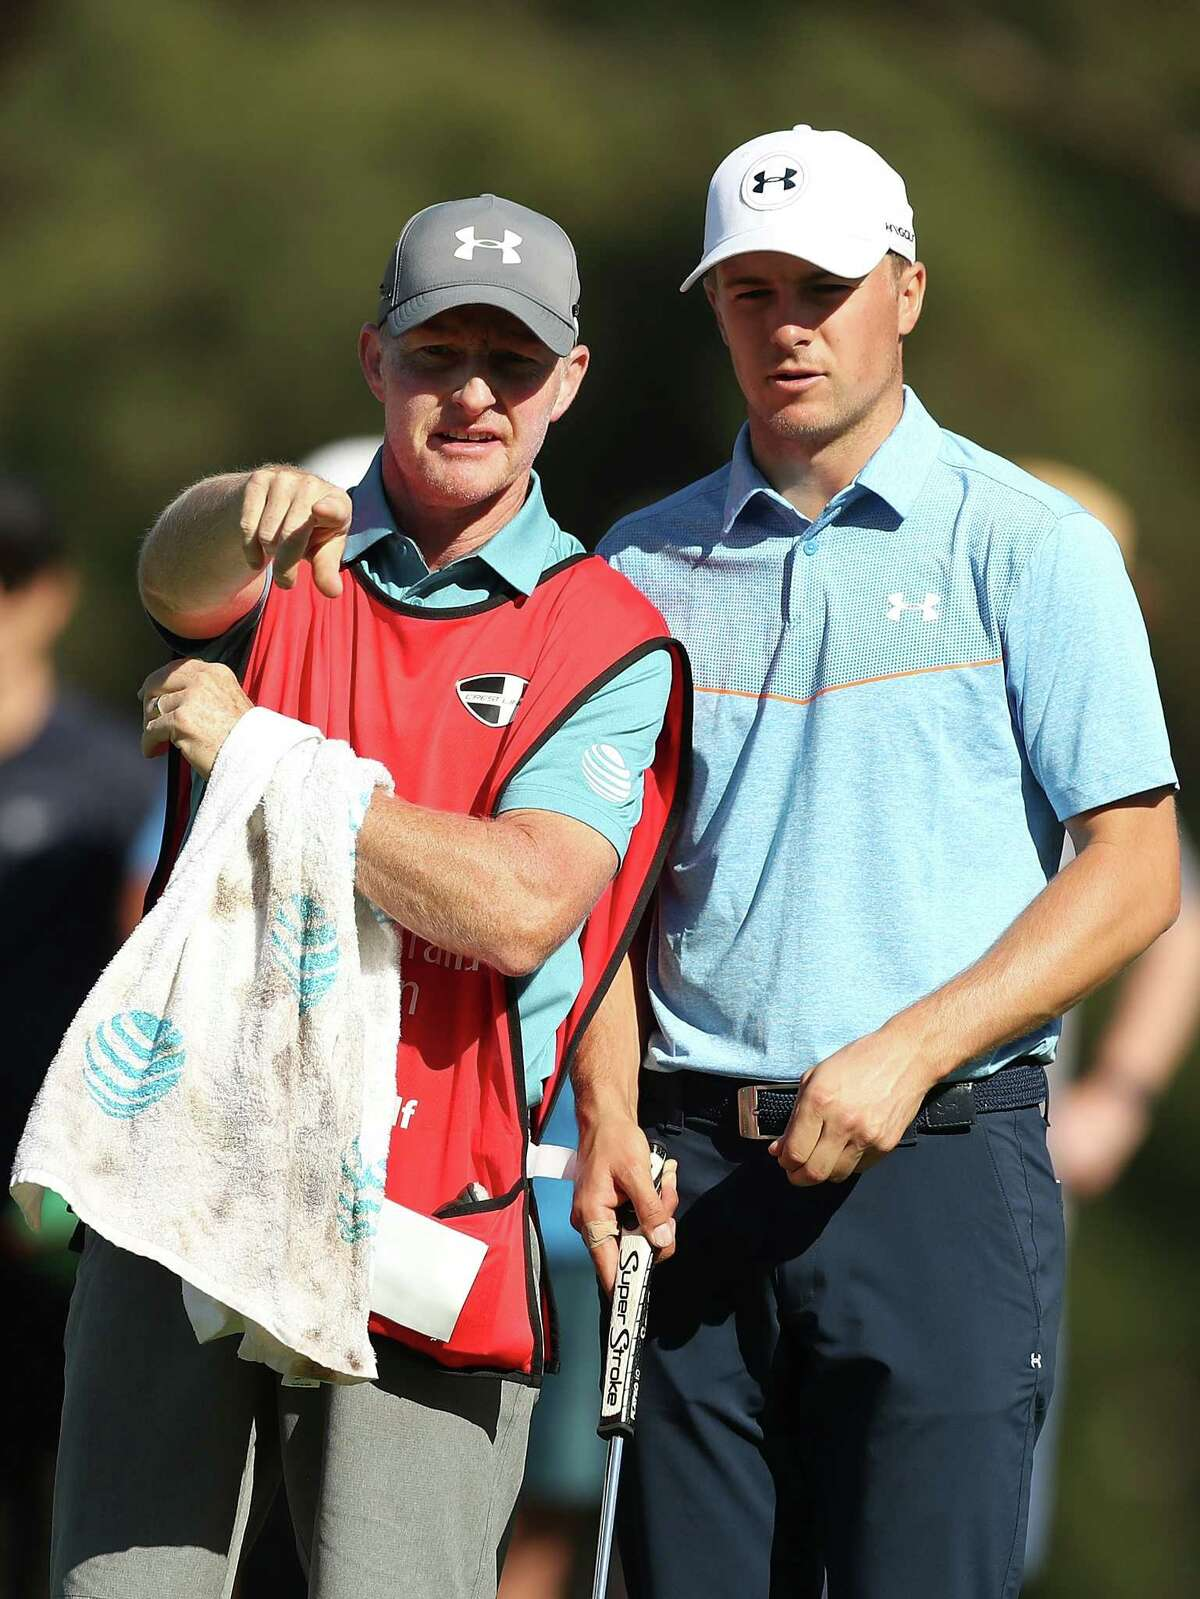 SYDNEY, AUSTRALIA - NOVEMBER 24: Jordan Spieth of the United States and swing coach and caddie for the week Cameron McCormick speak on the 15th hole during day two of the 2017 Australian Golf Open at the Australian Golf Club on November 24, 2017 in Sydney, Australia. (Photo by Mark Metcalfe/Getty Images)